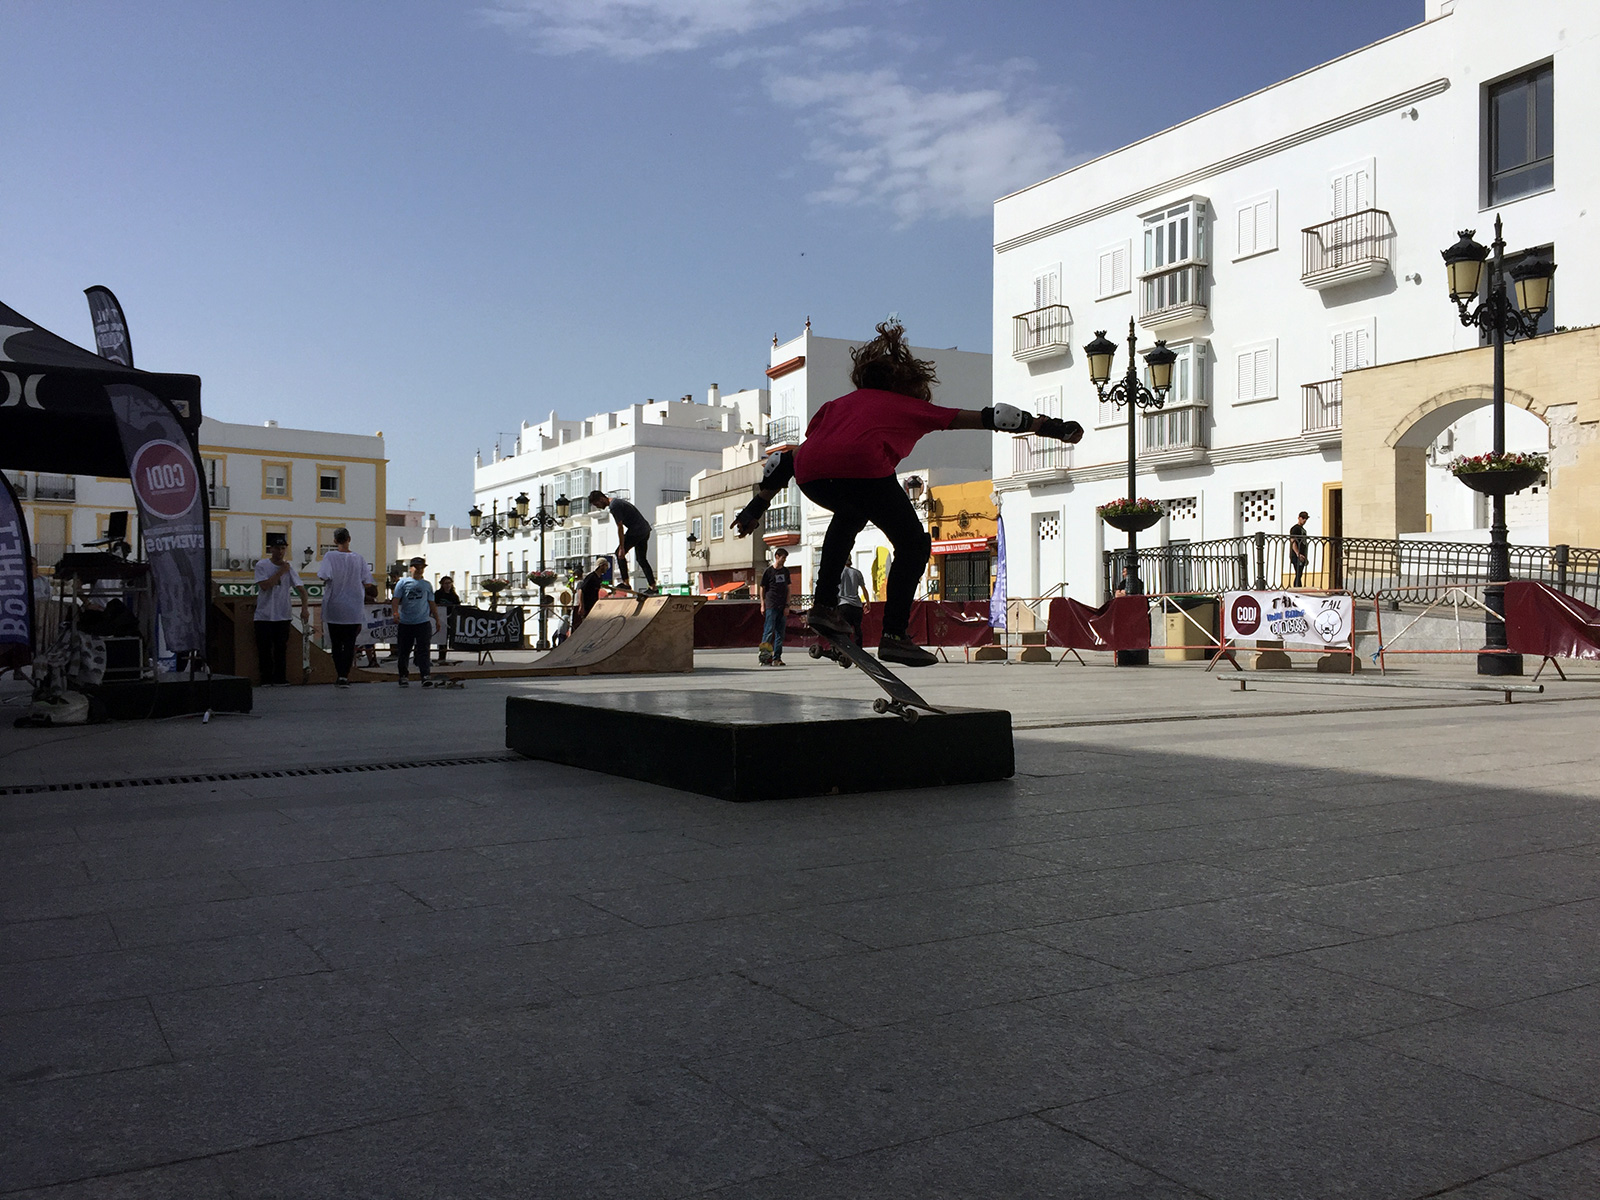 Skate Contest in Chiclana de la Frontera, Spain by Jets Like Taxis